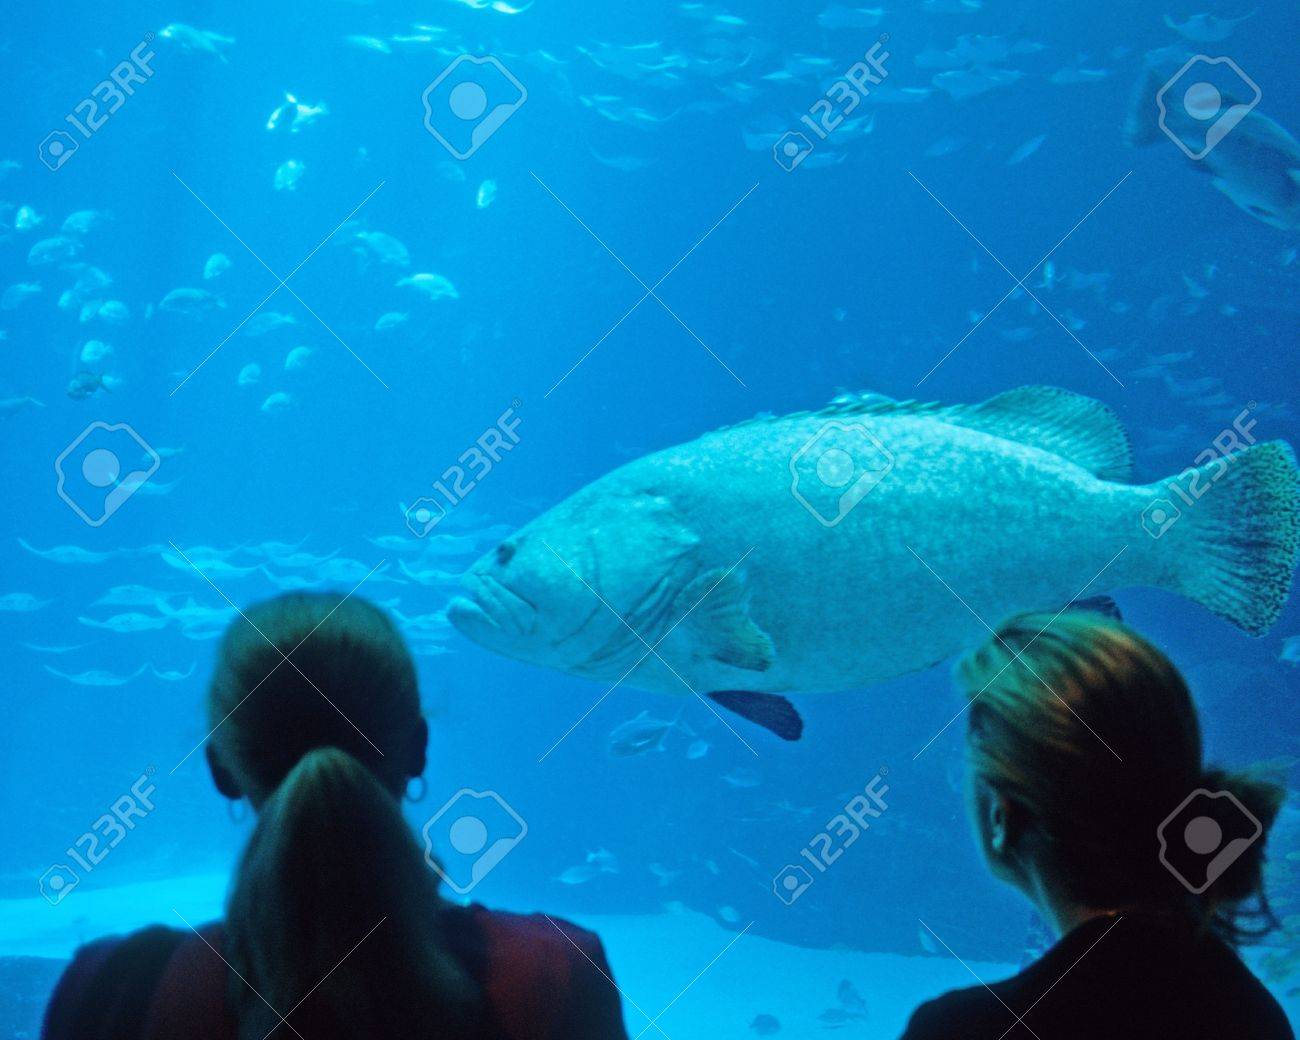 Fish aquarium in georgia - Giant Grouper And Sergeant Fish At Georgia Aquarium In Atlanta Georgia Stock Photo